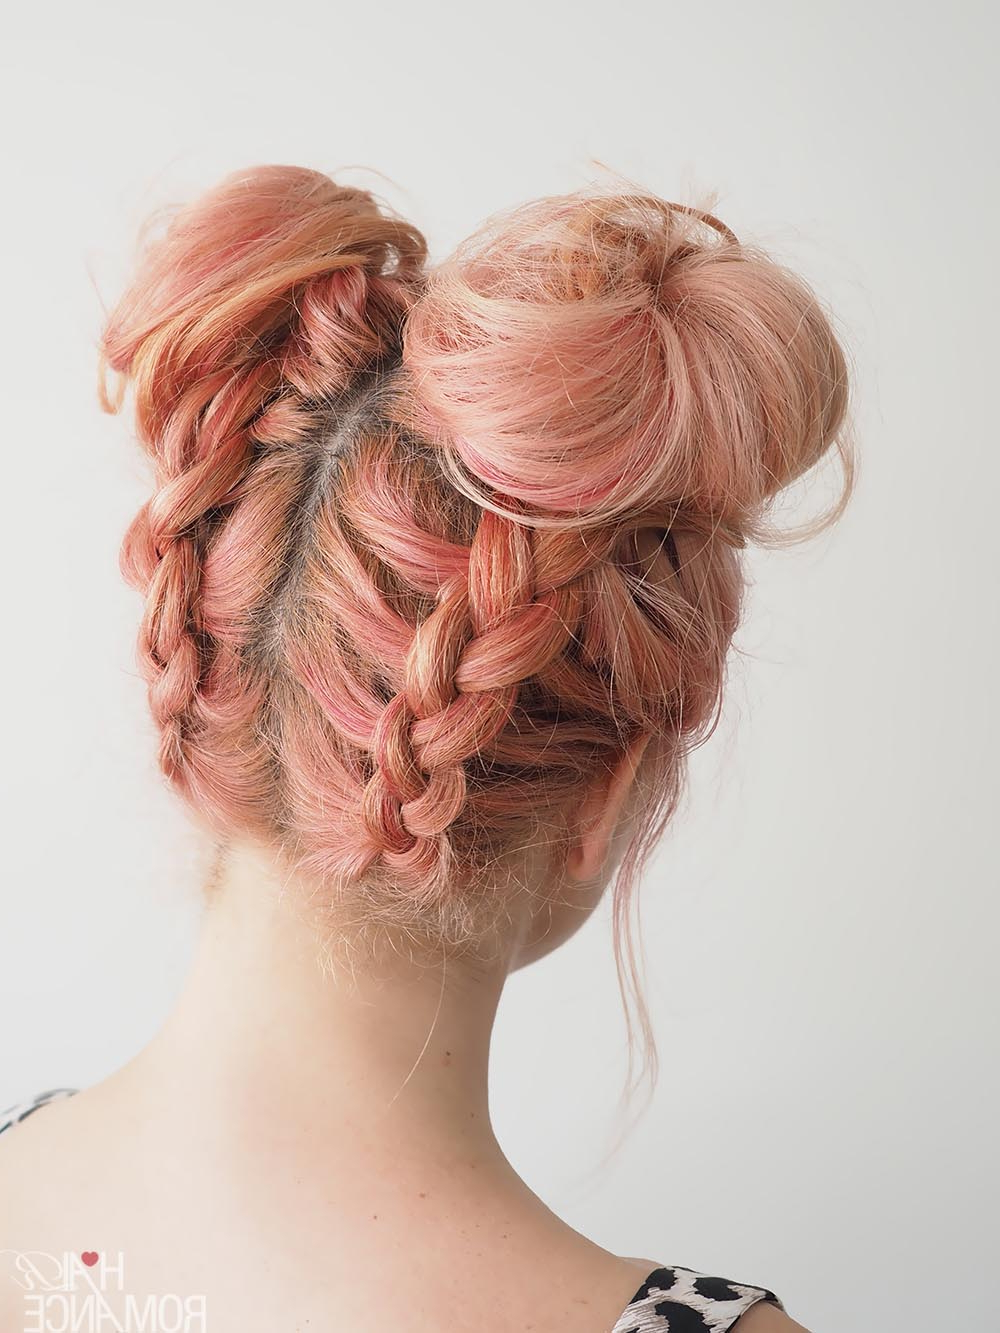 Latest Braids And Buns Hairstyles Throughout Diy Braided Space Buns Tutorial – Hair Romance (Gallery 18 of 20)